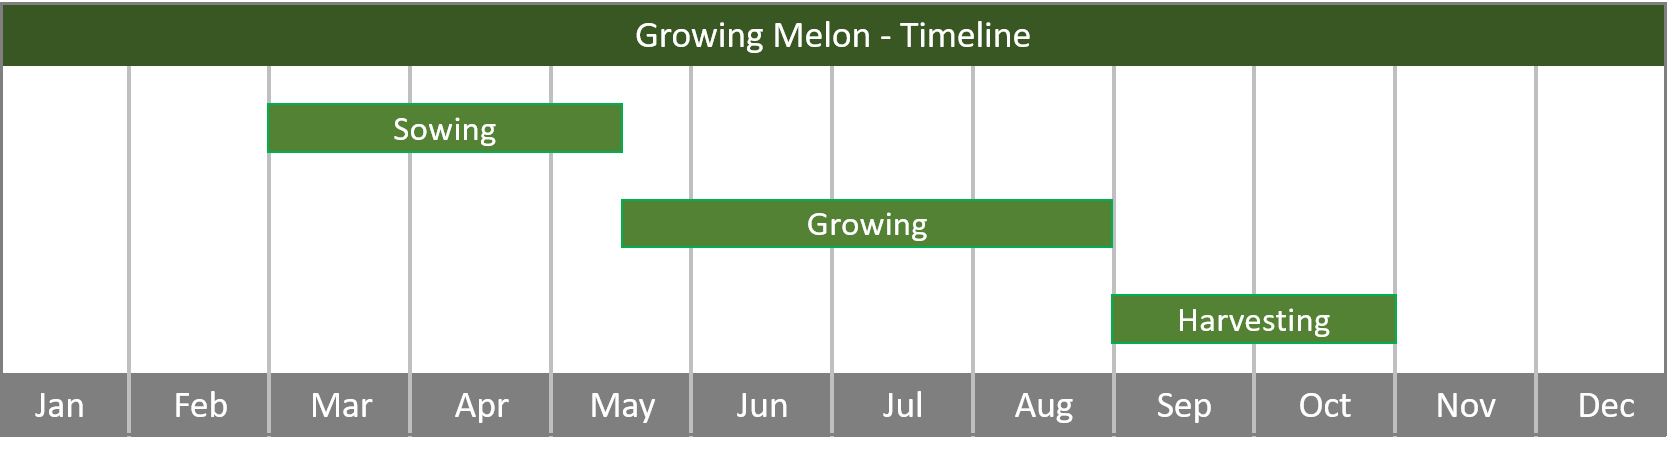 how to grow melons timeline